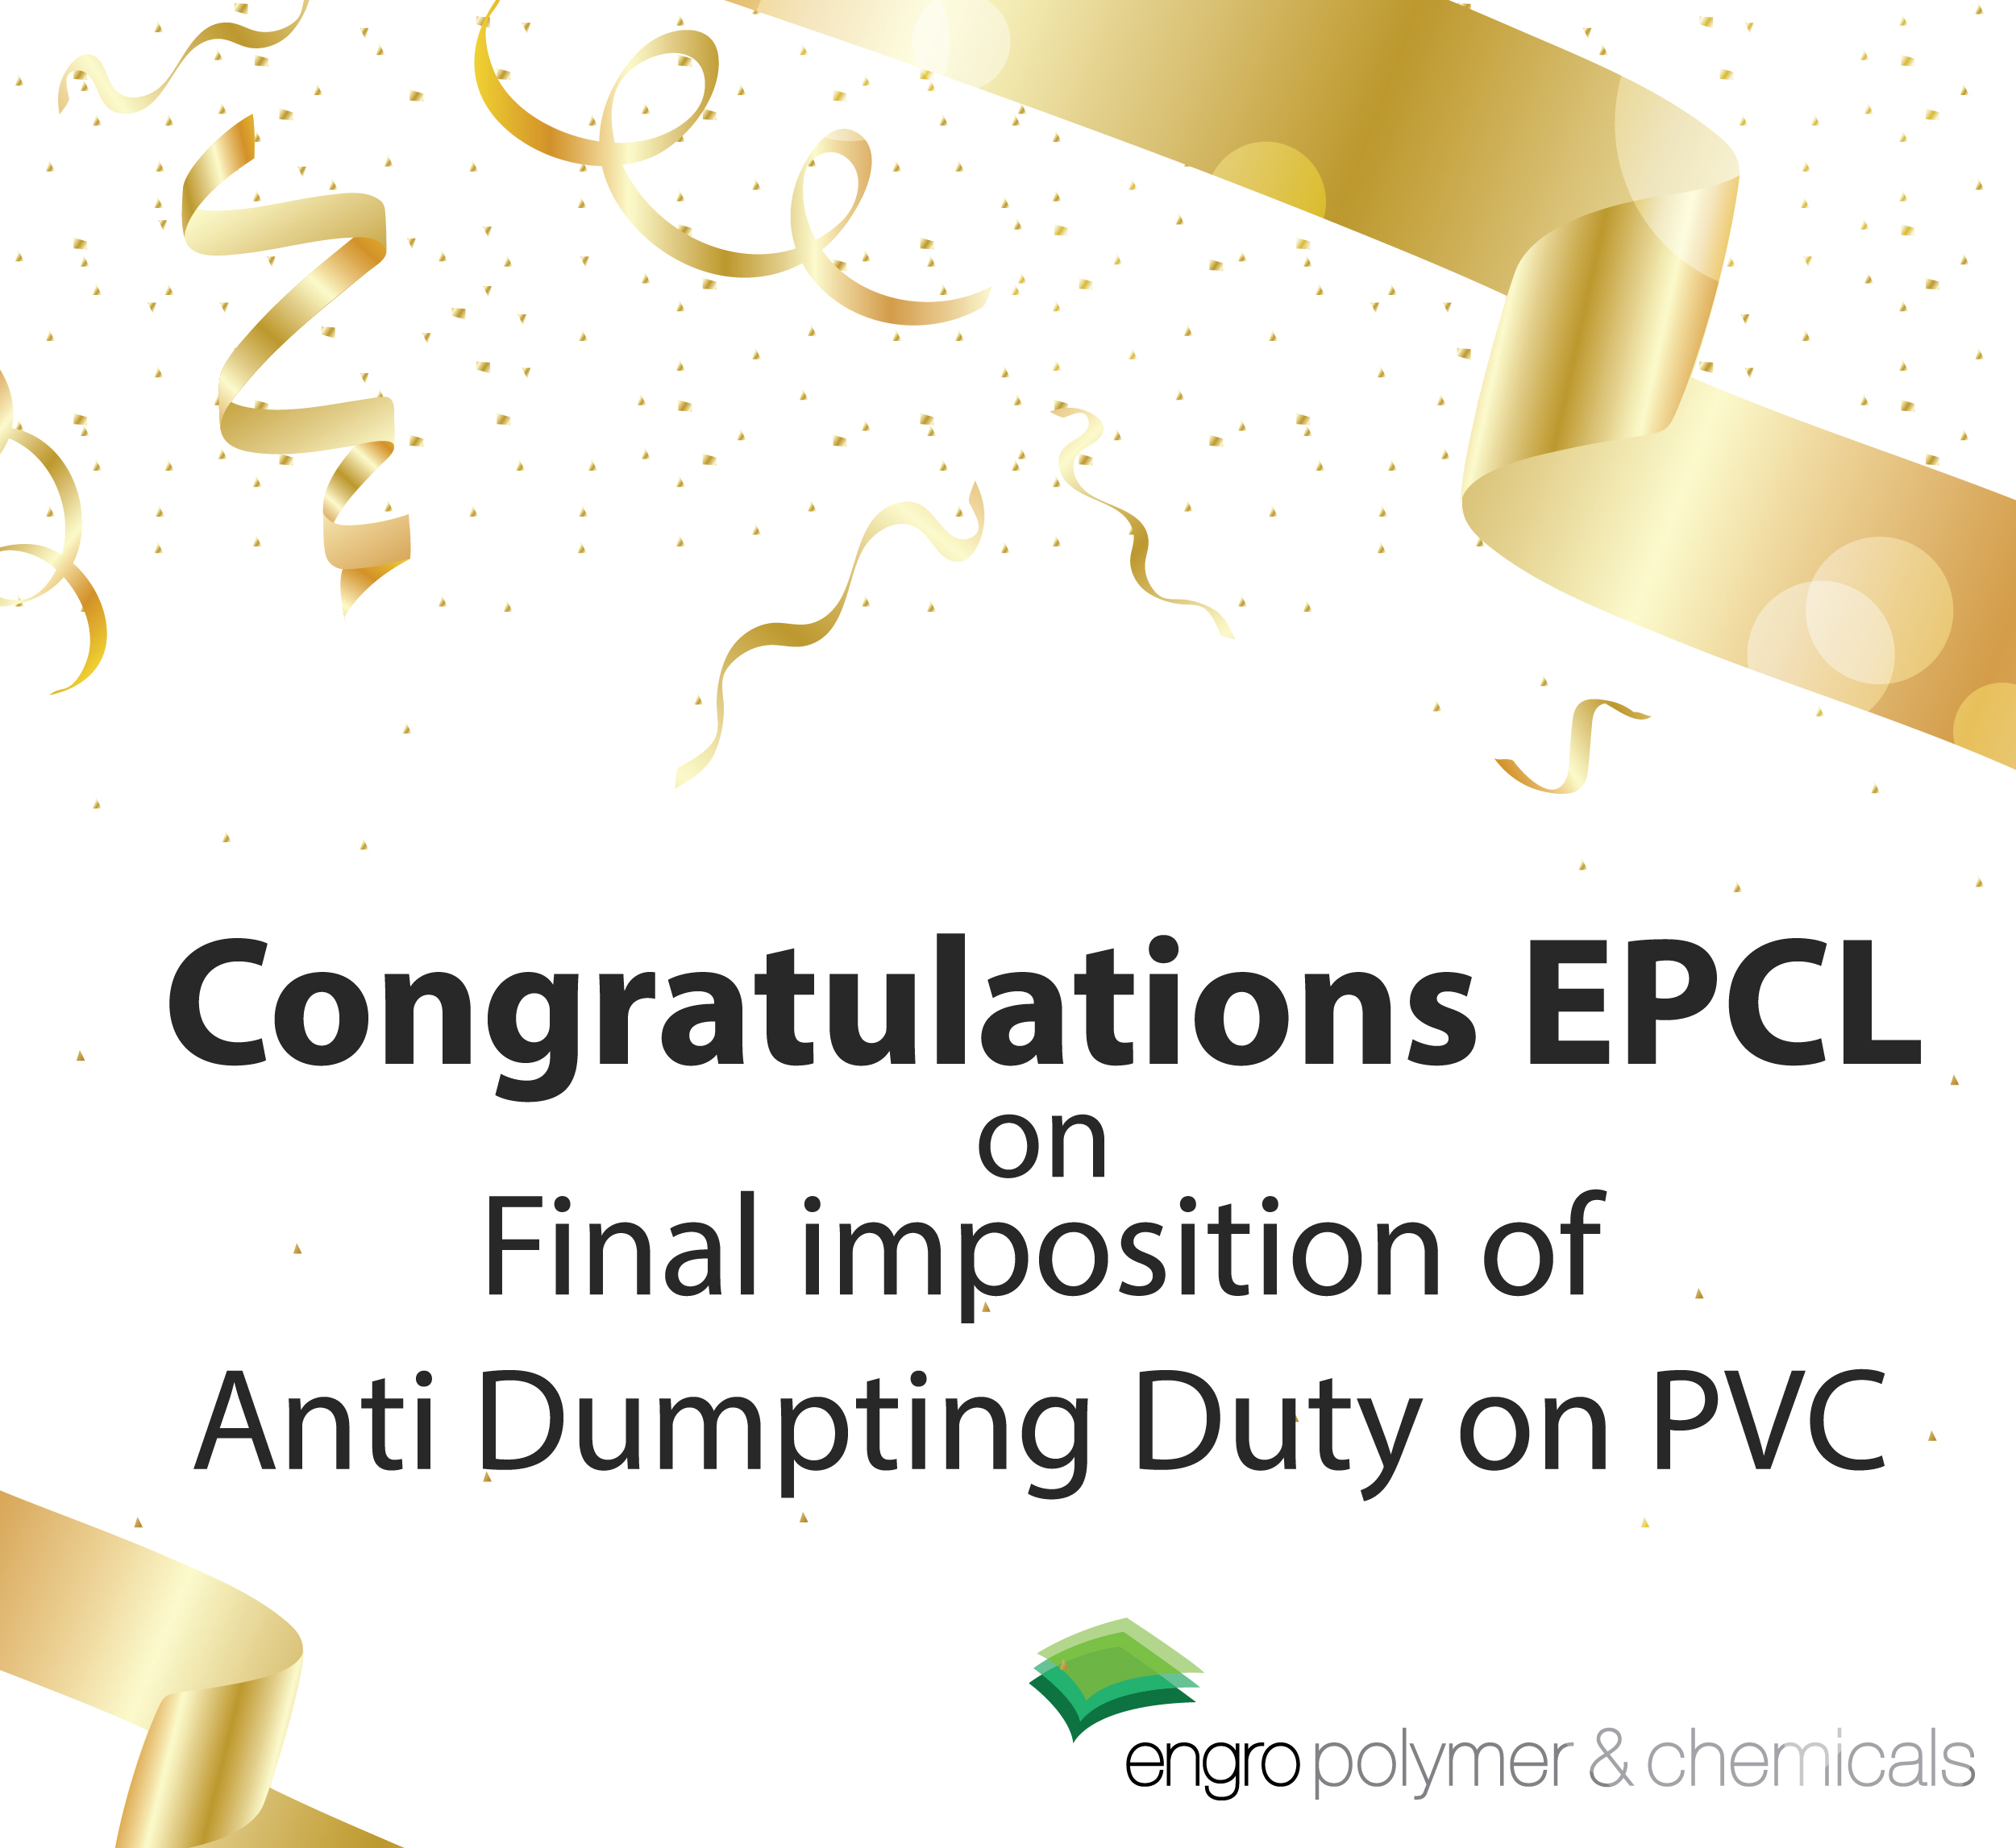 Final Imposition of Anti Dumping Duty on PVC